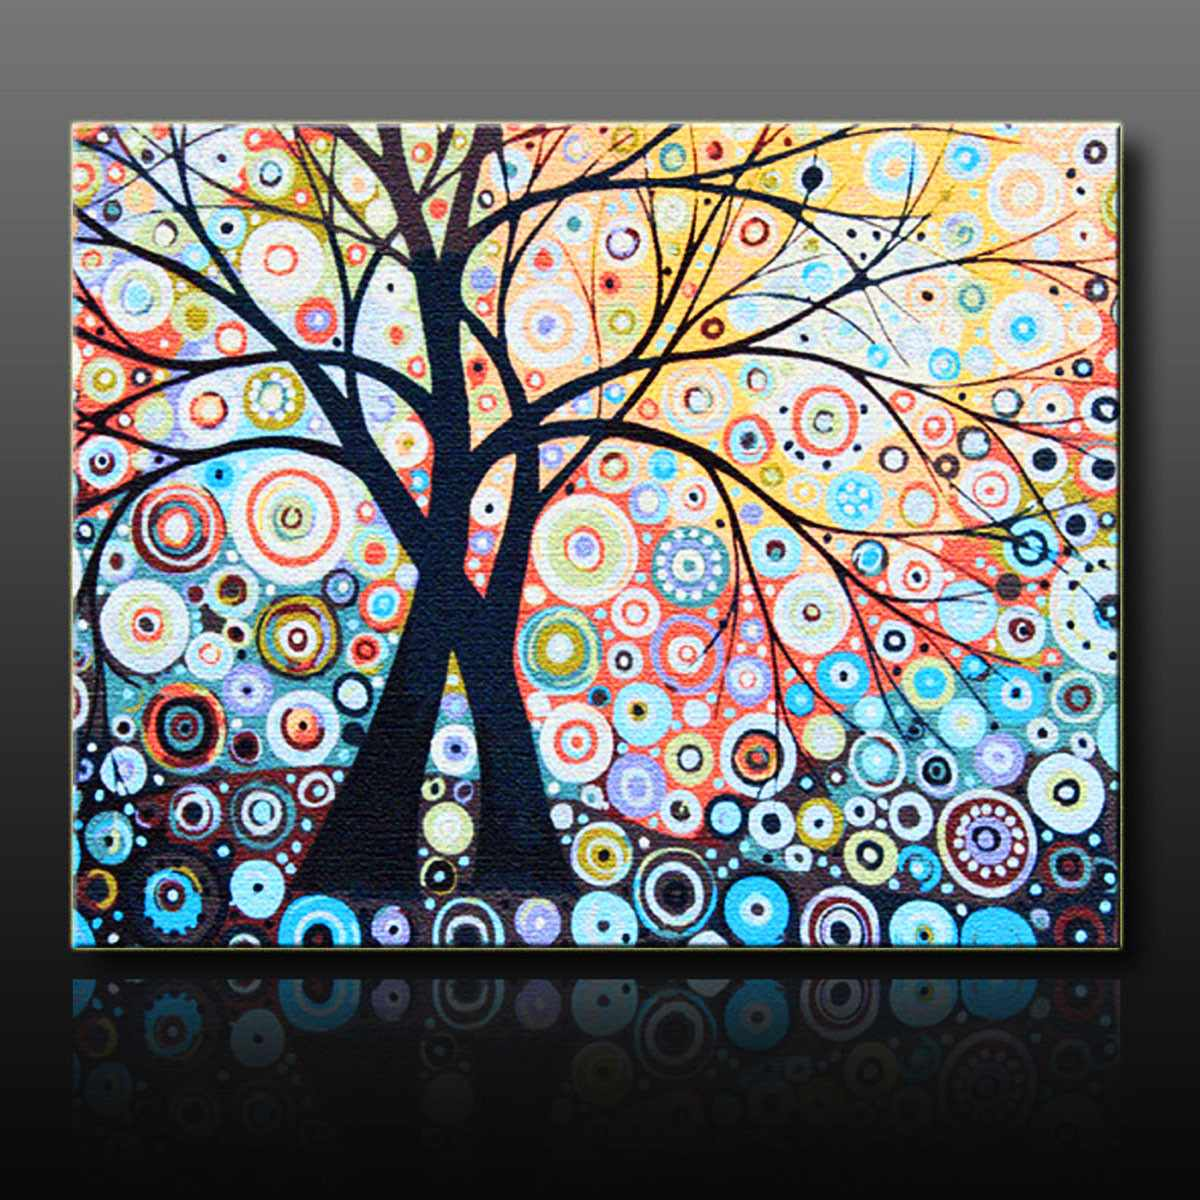 Home House Decorate Magic New DIY Paint By Number 16X20inch kit Abstract Tree On Canvas Cool Boy Girl Party Gift